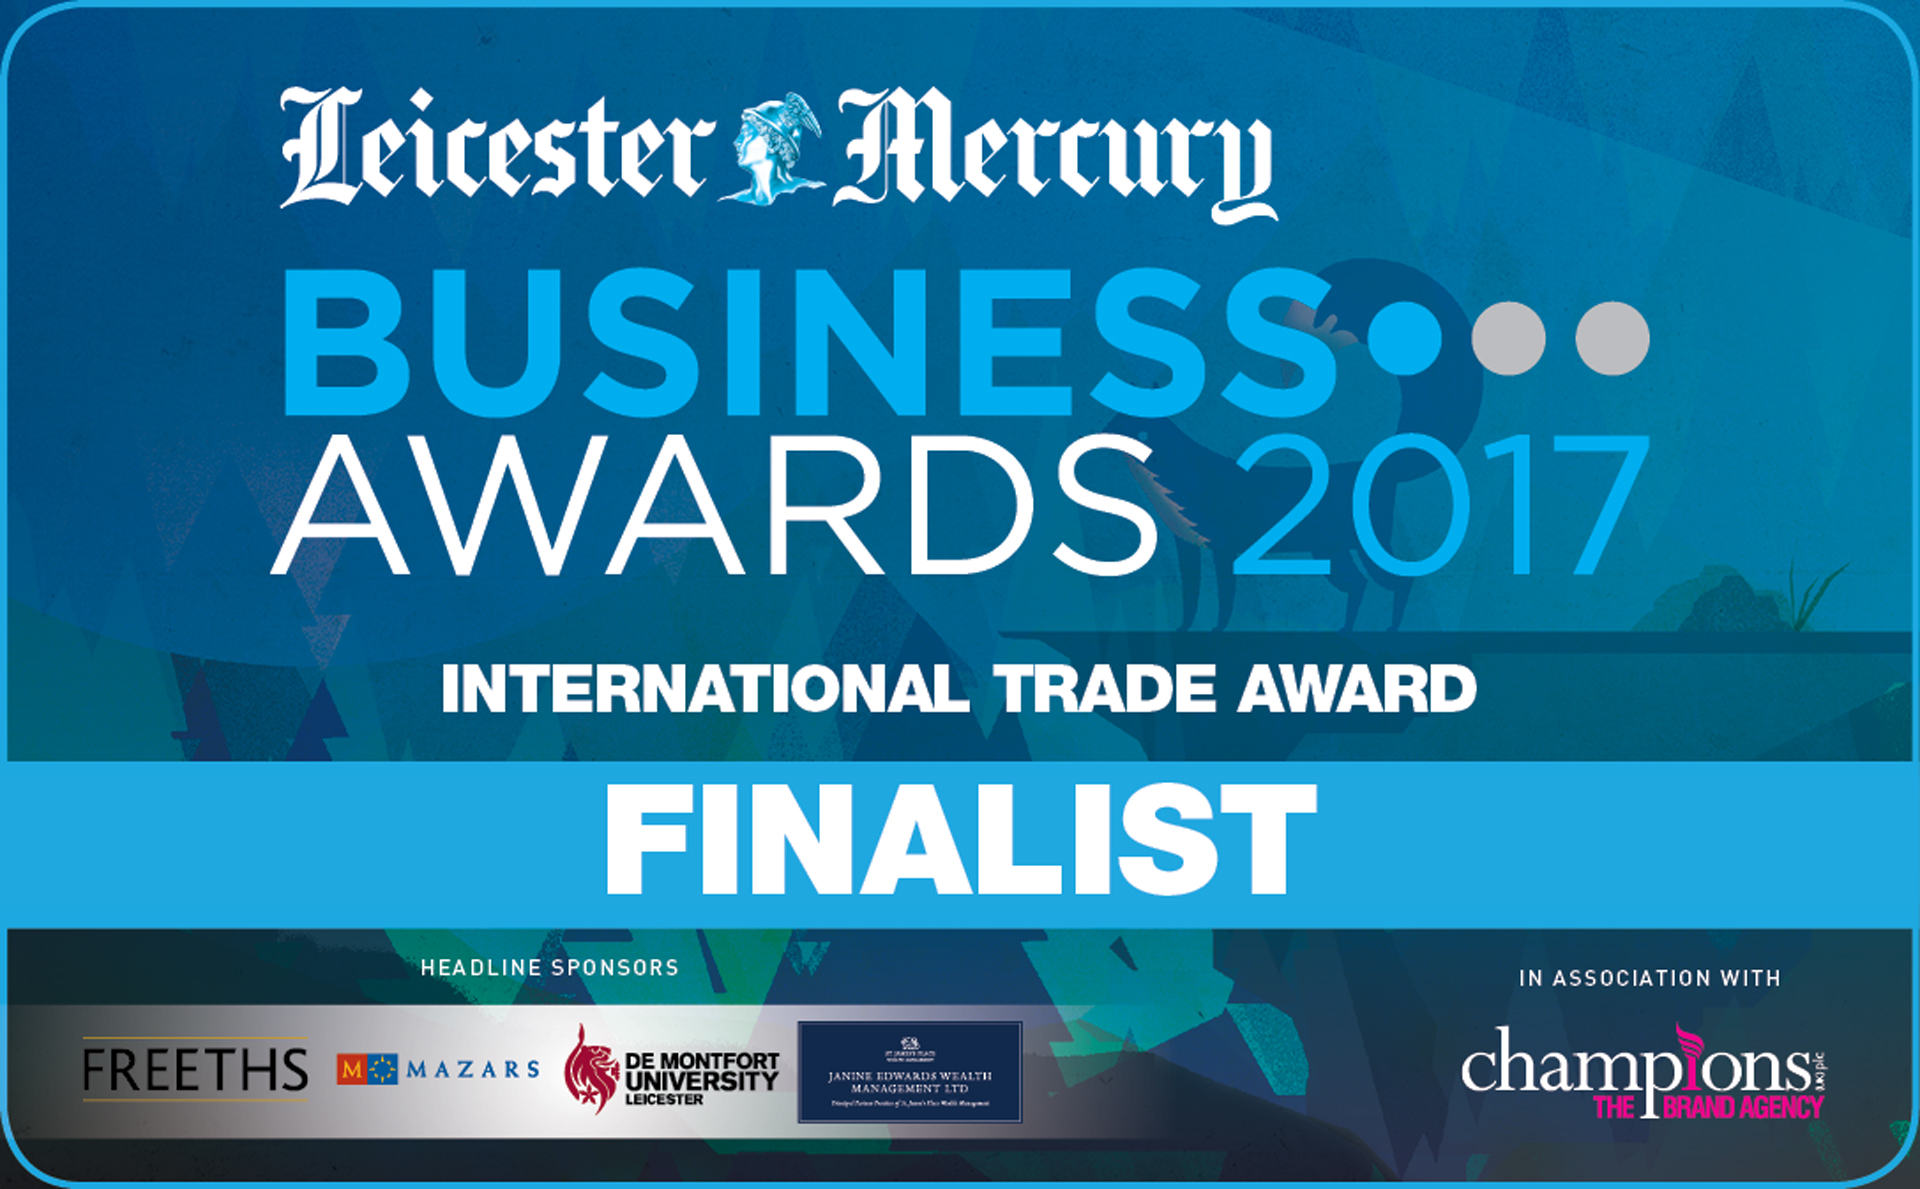 Business Awards 2017 International Trade